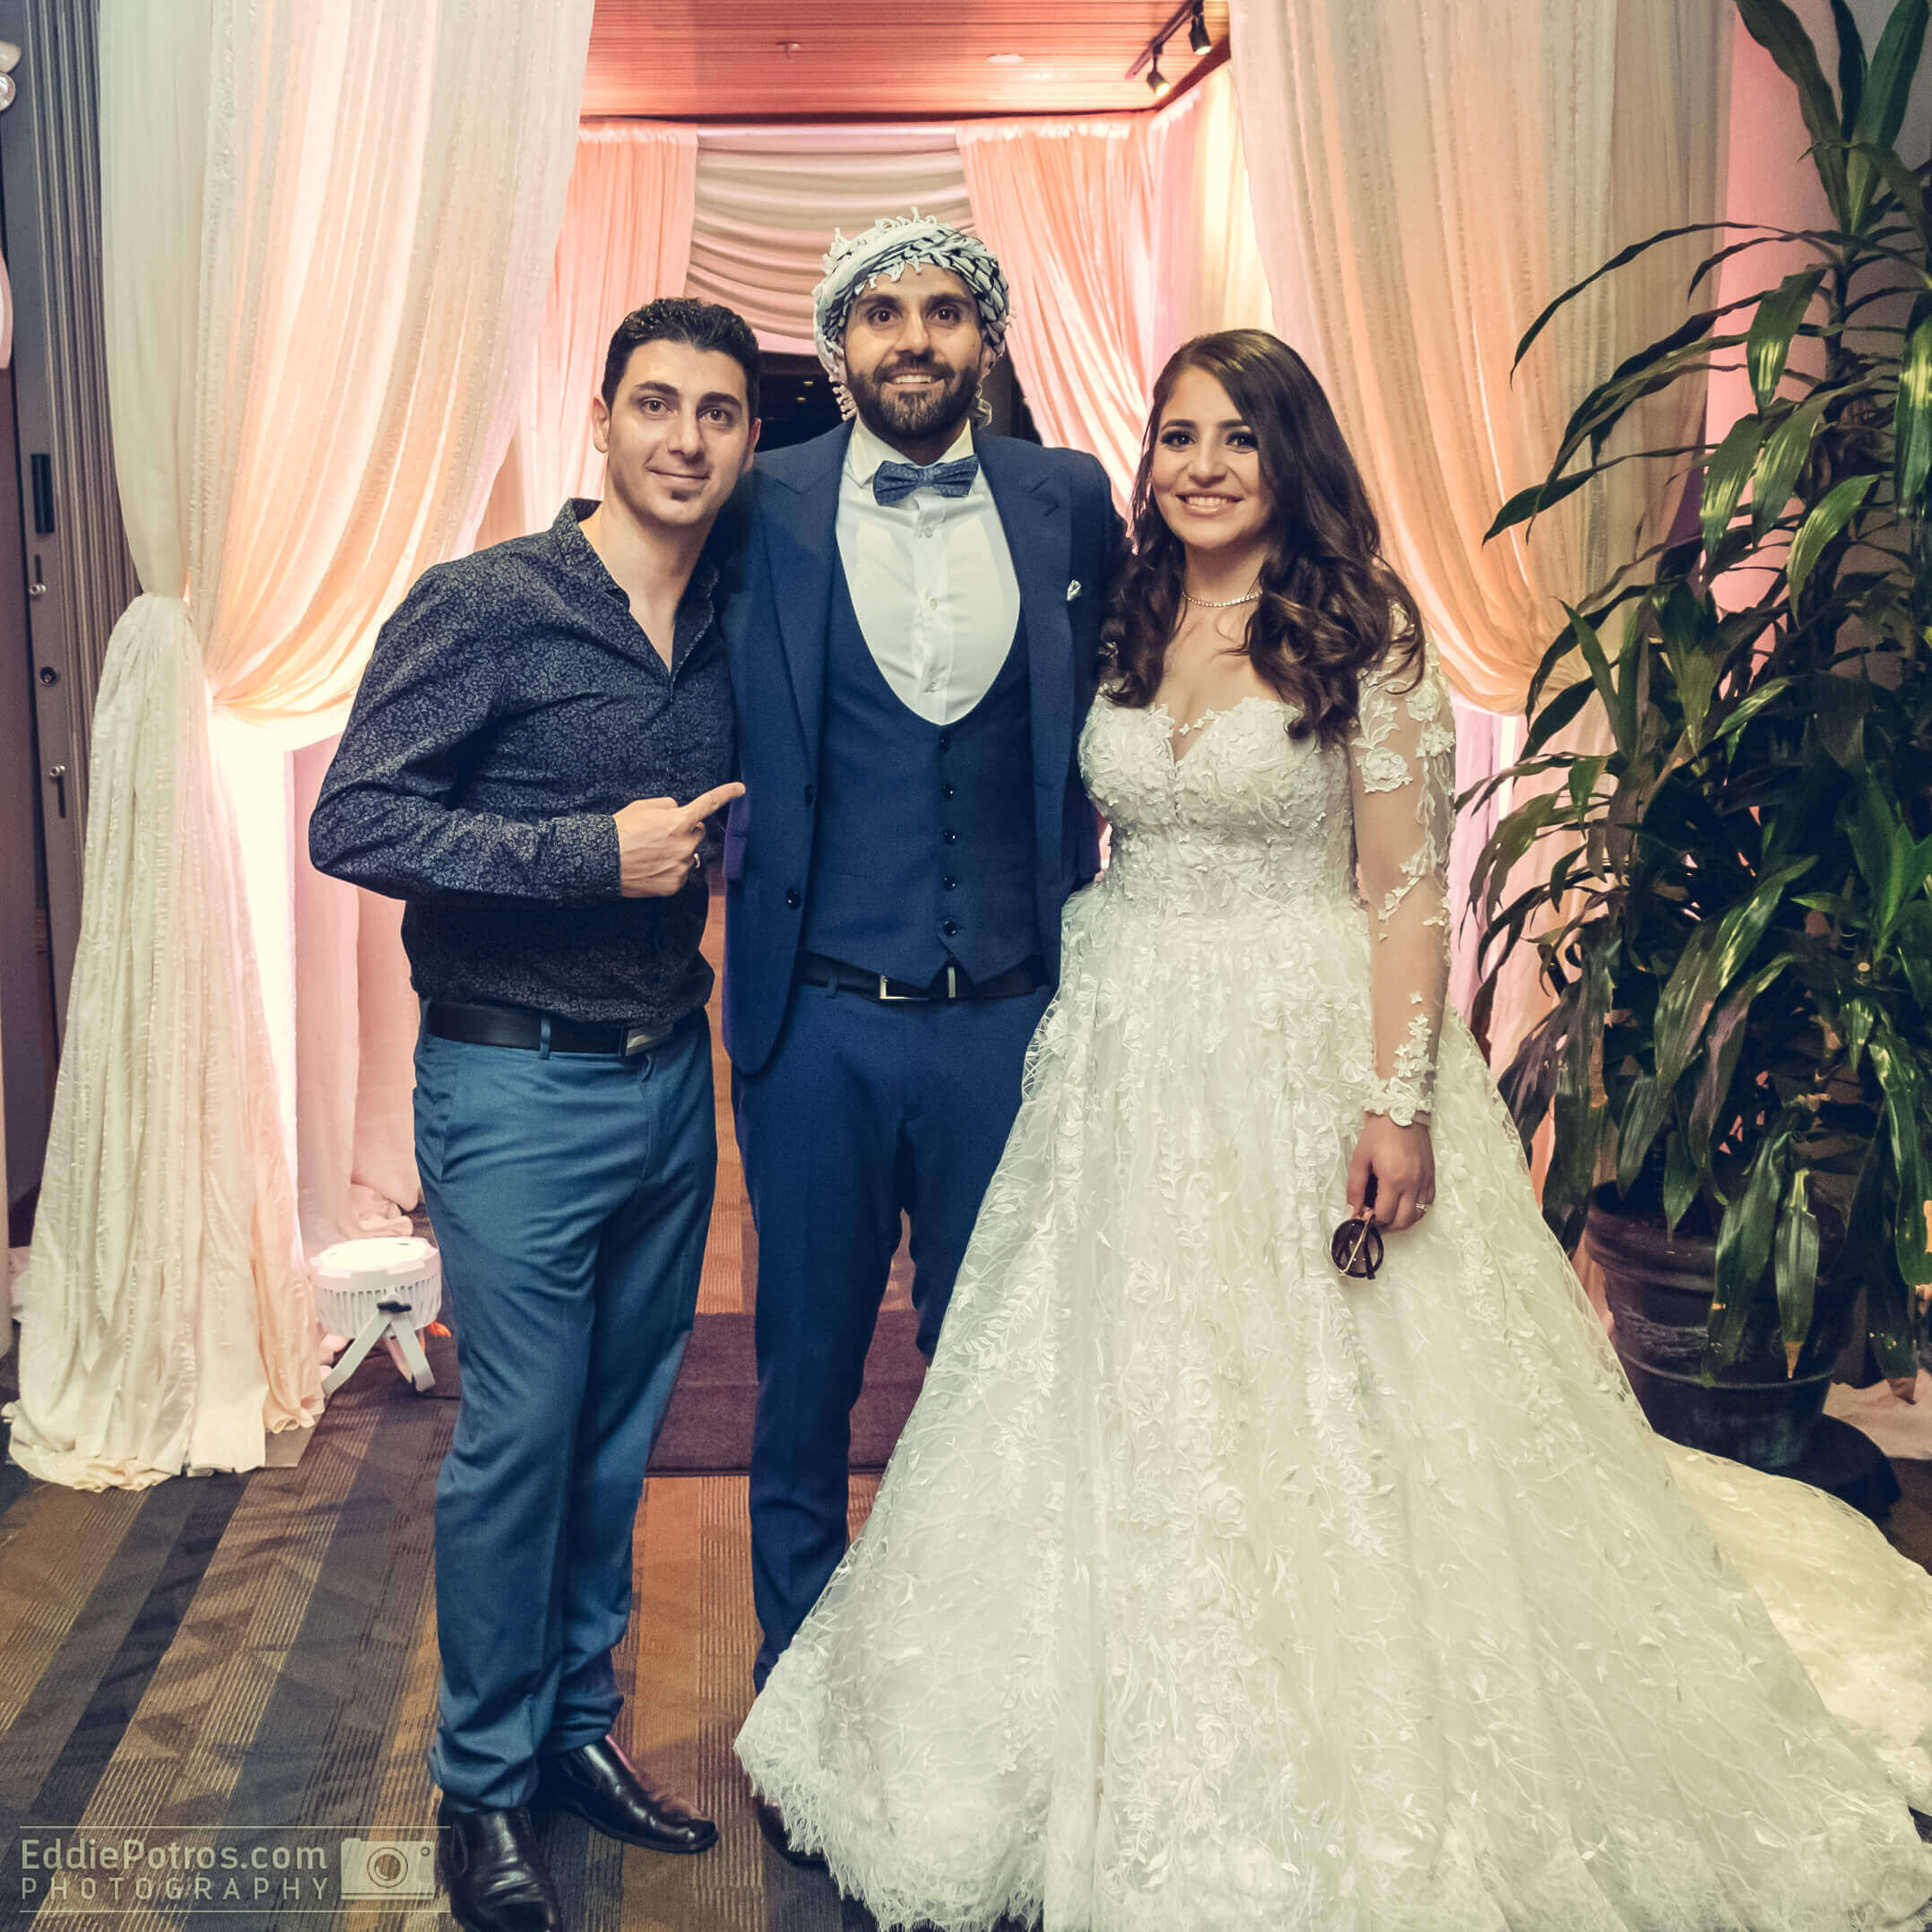 Congratulations Nejem & Rawan on your Wedding